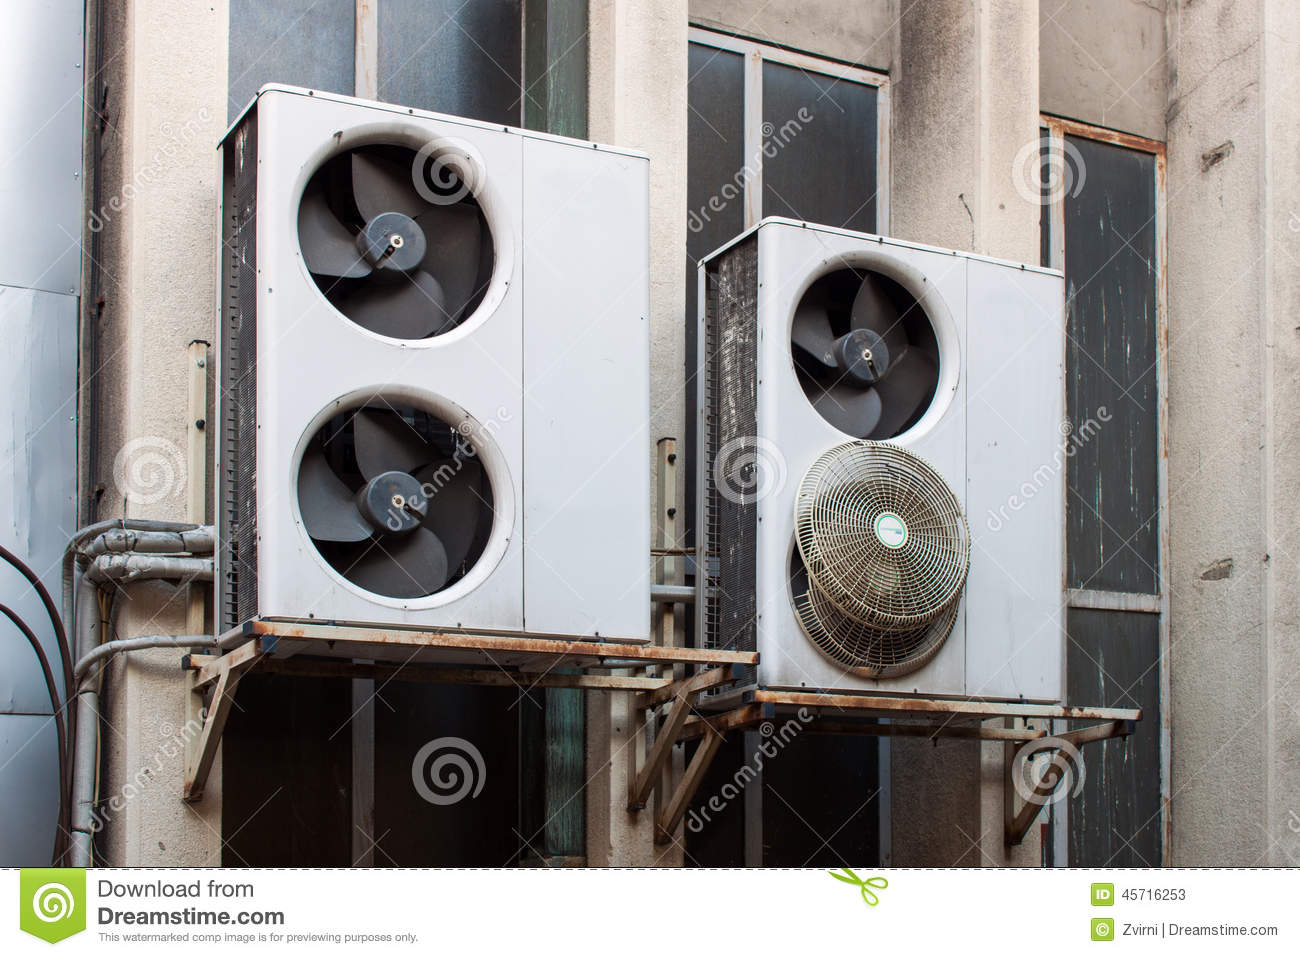 Damaged air conditioning